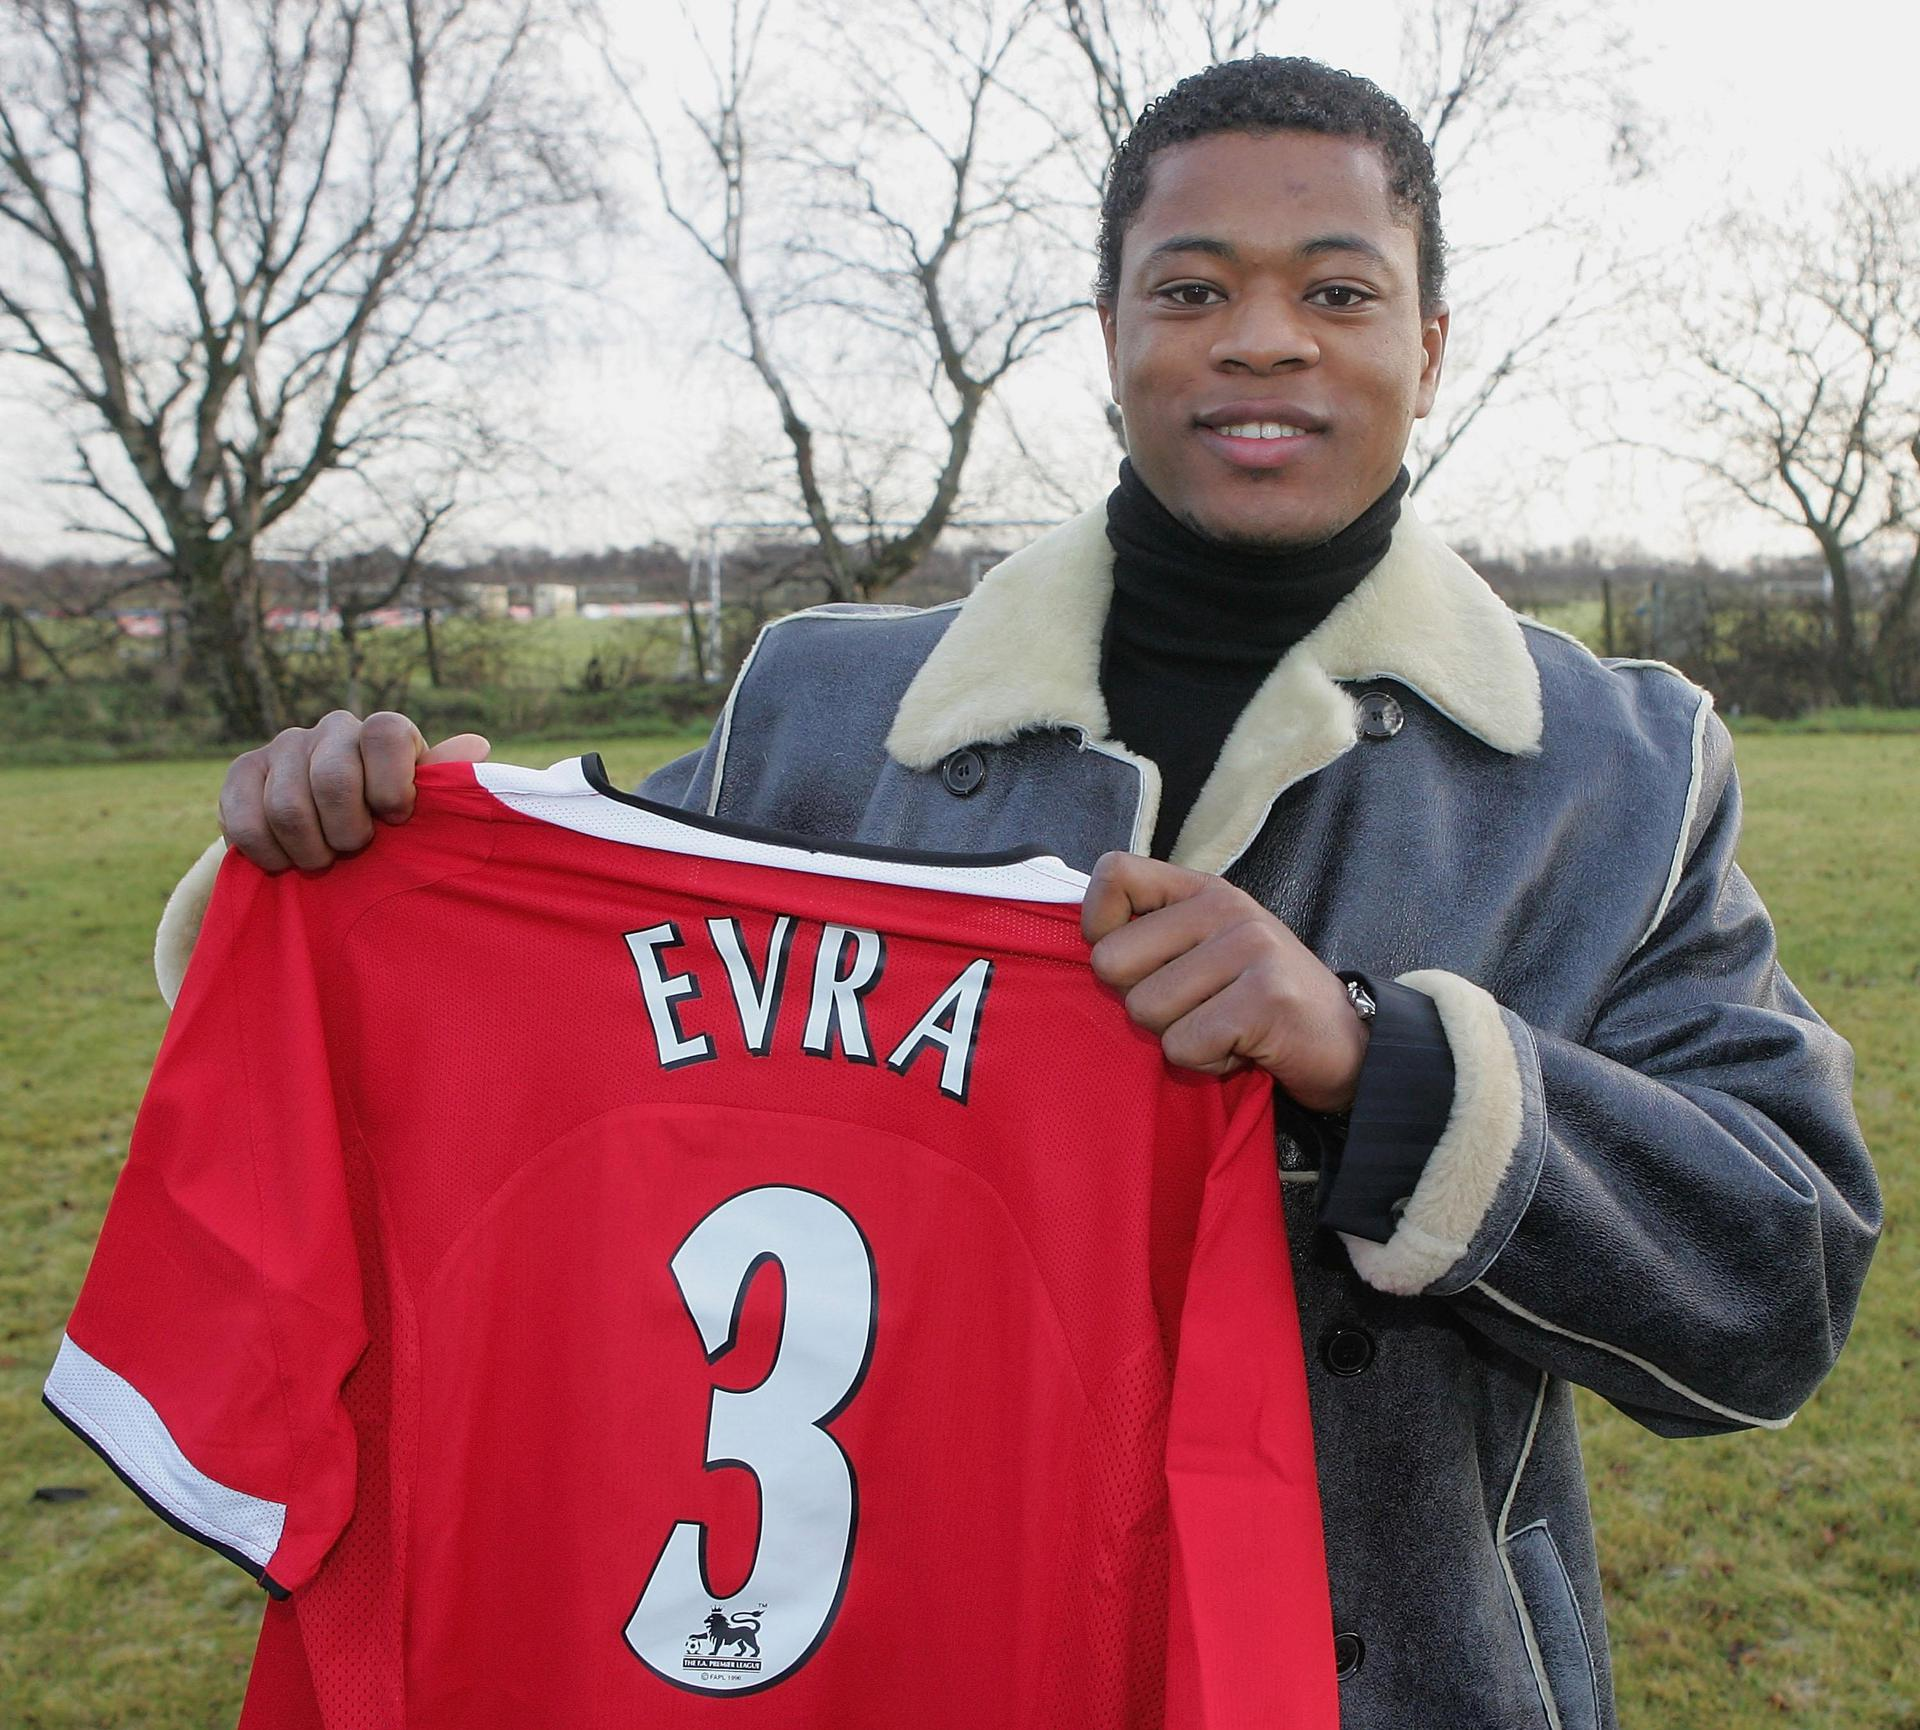 Patrice Evra holds up a United shirt.,